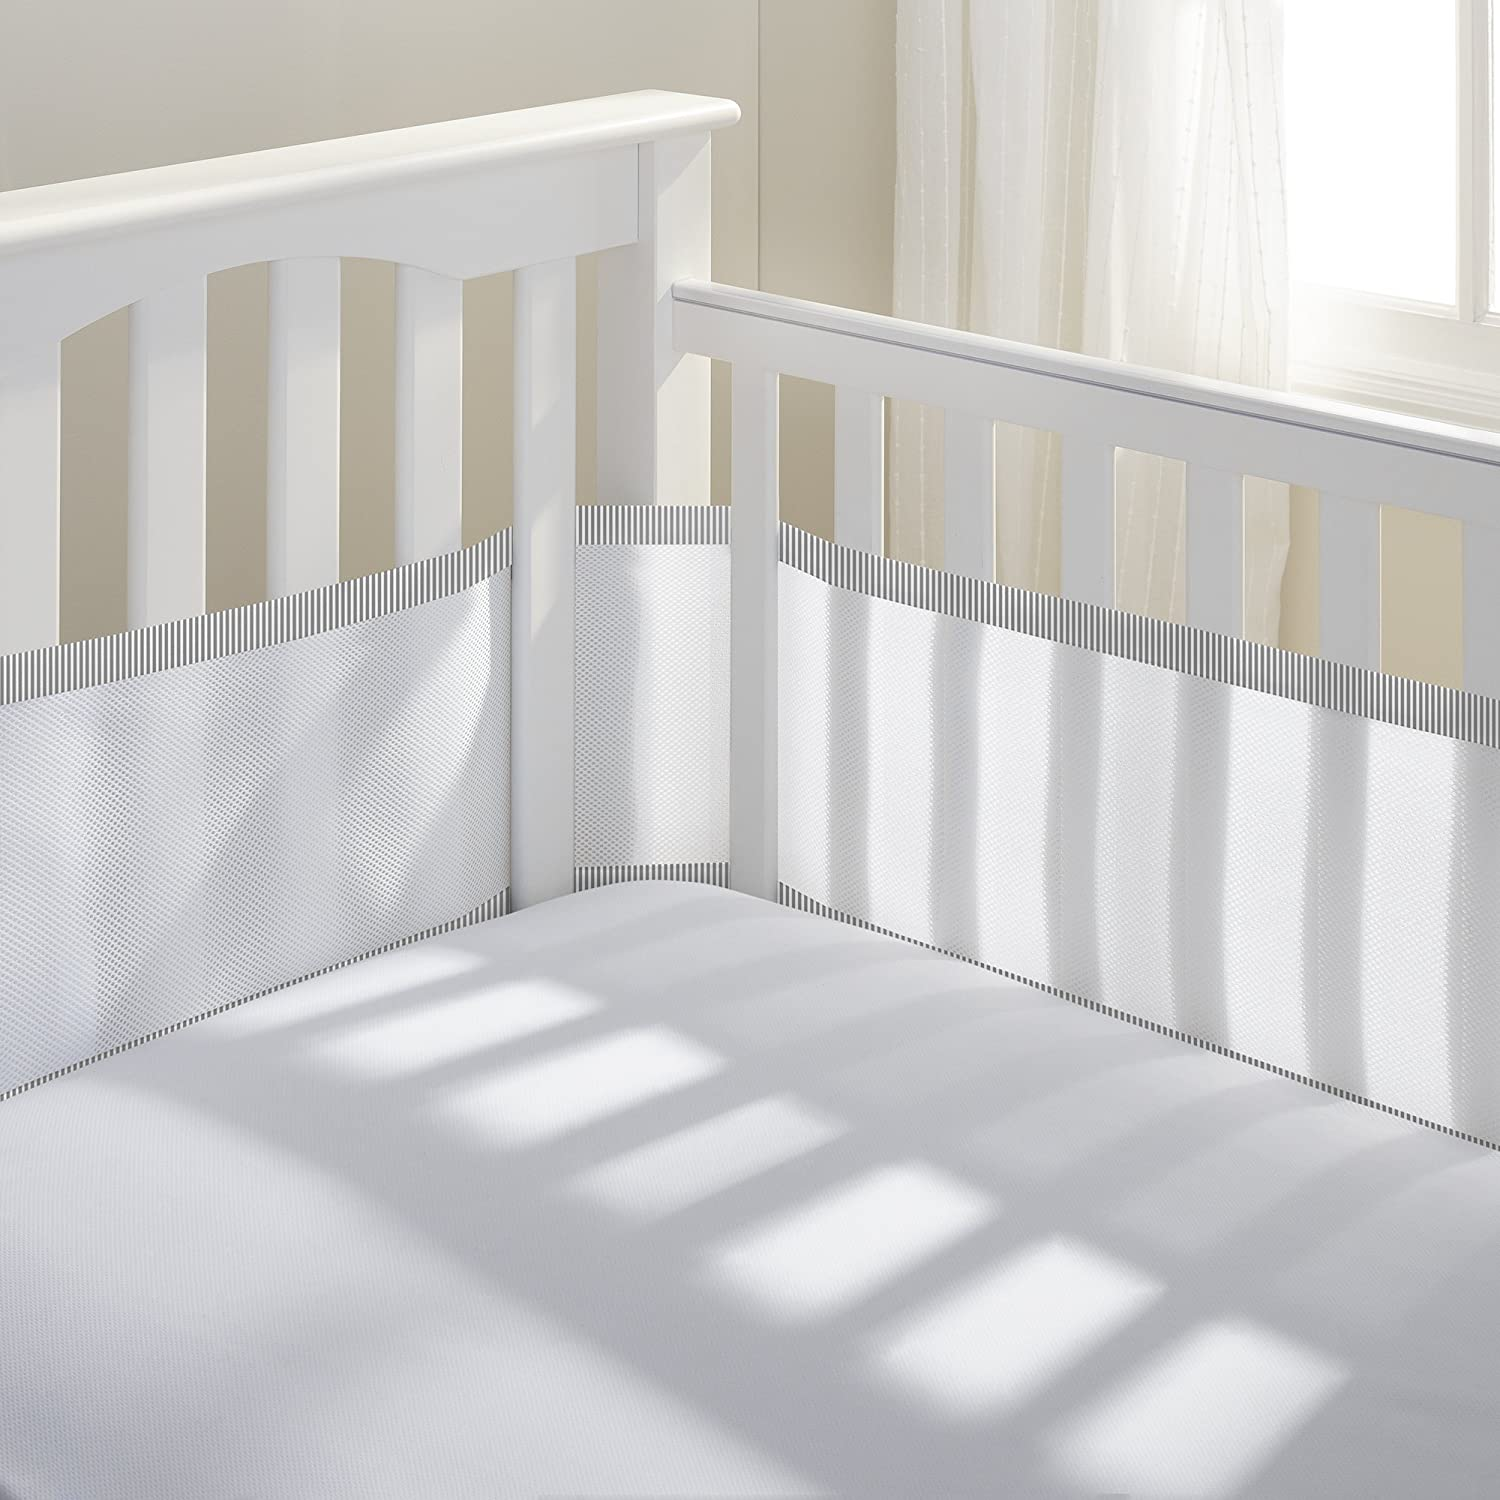 BreathableBaby | Breathable Mesh Crib Liner | Doctor Endorsed | Helps Prevent Arms and Legs from Getting Stuck Between Crib Slats | Independently Tested for Safety | White w/Gray Seersucker Breathable Baby 10428